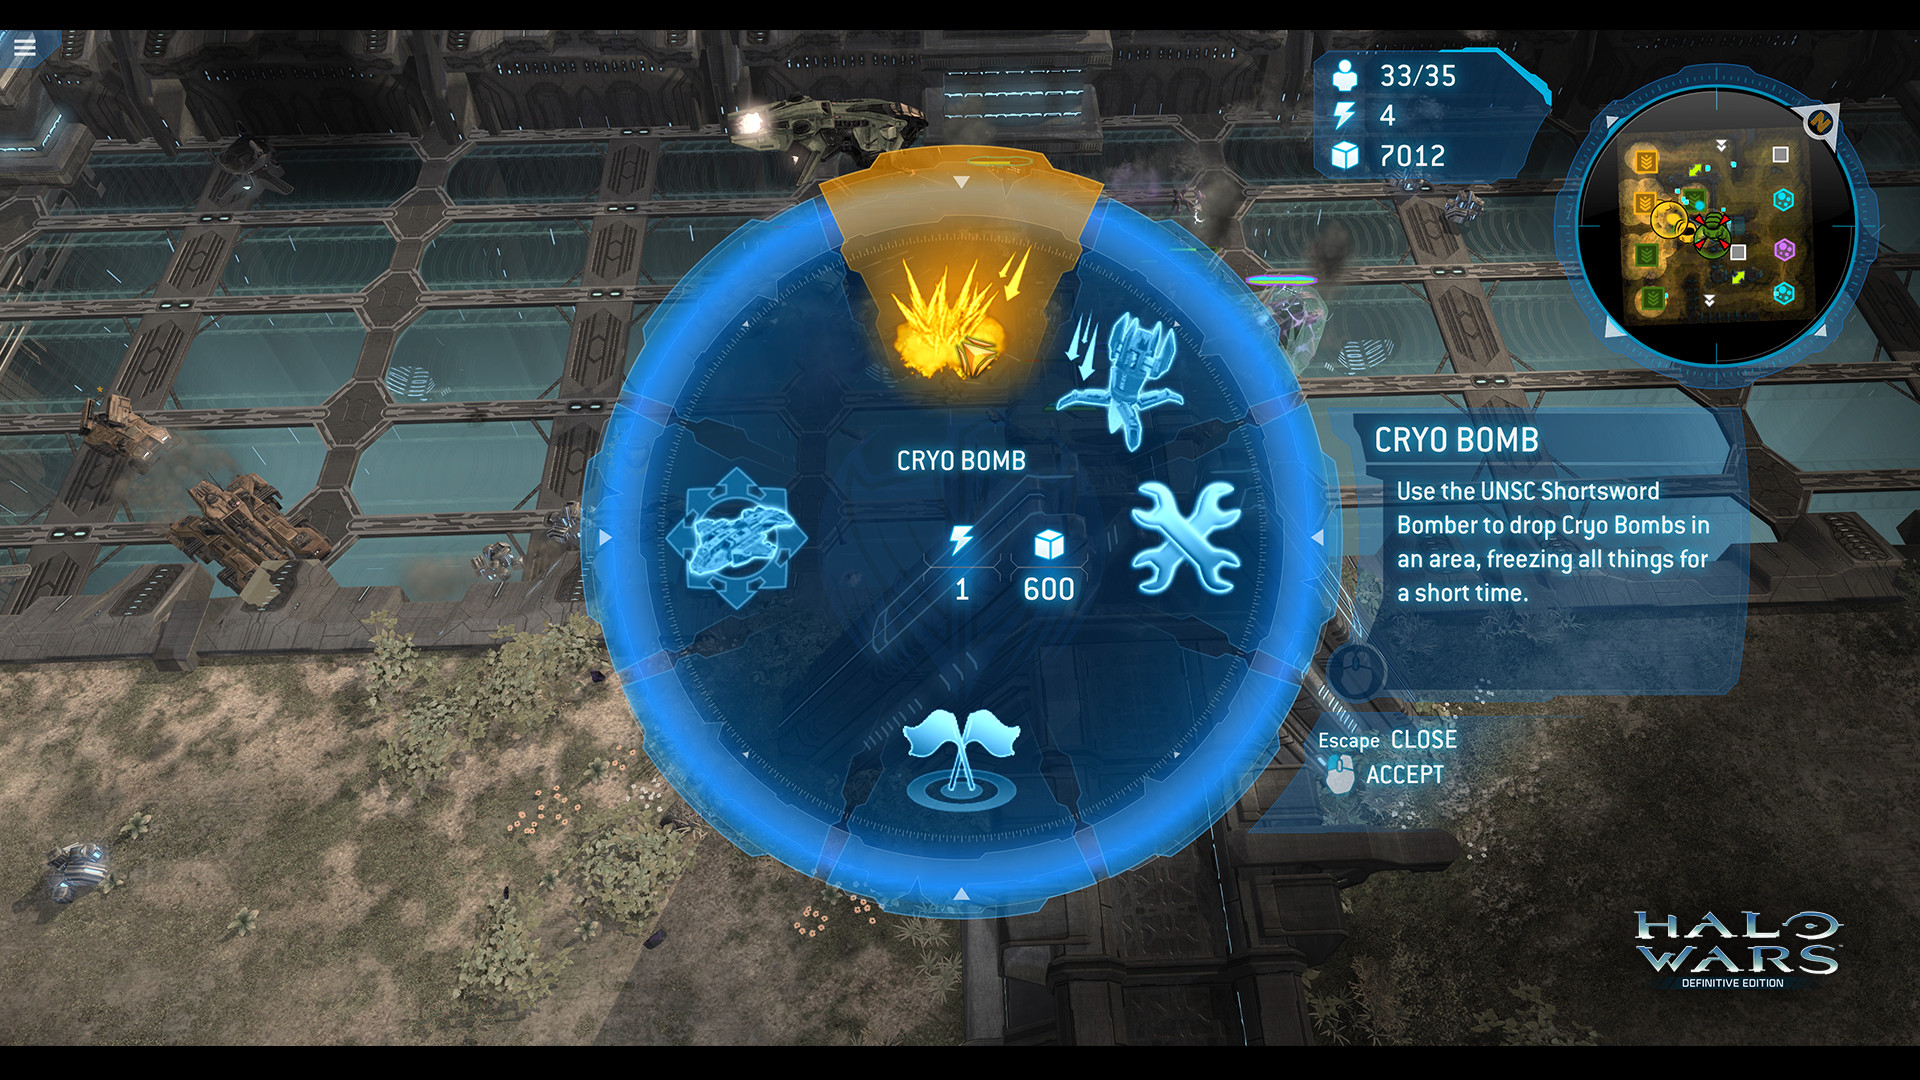 Halo Wars: Definitive Edition Screenshot 3